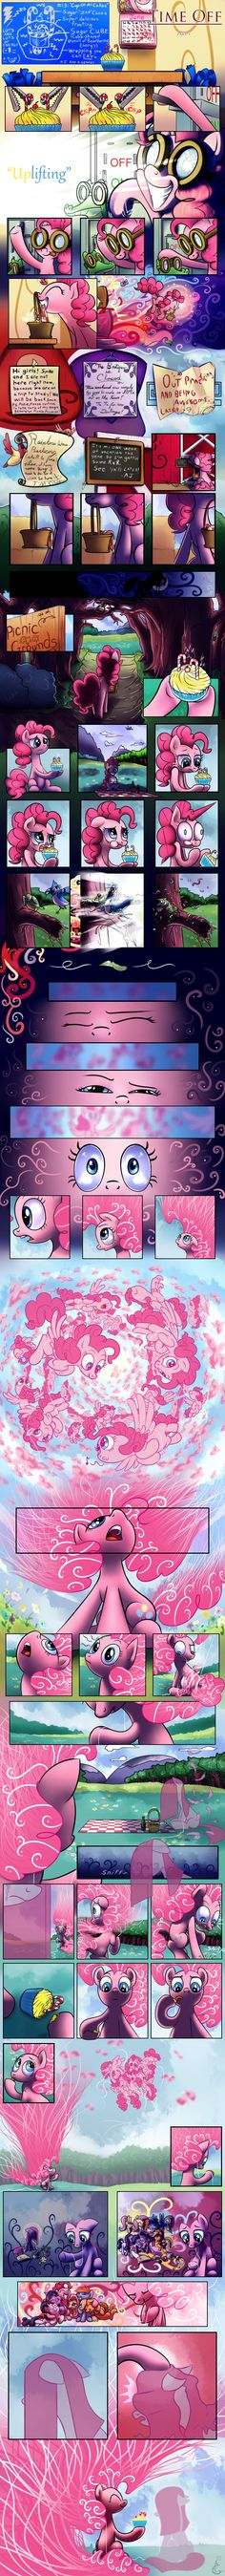 An Epic My Little Pony Comic